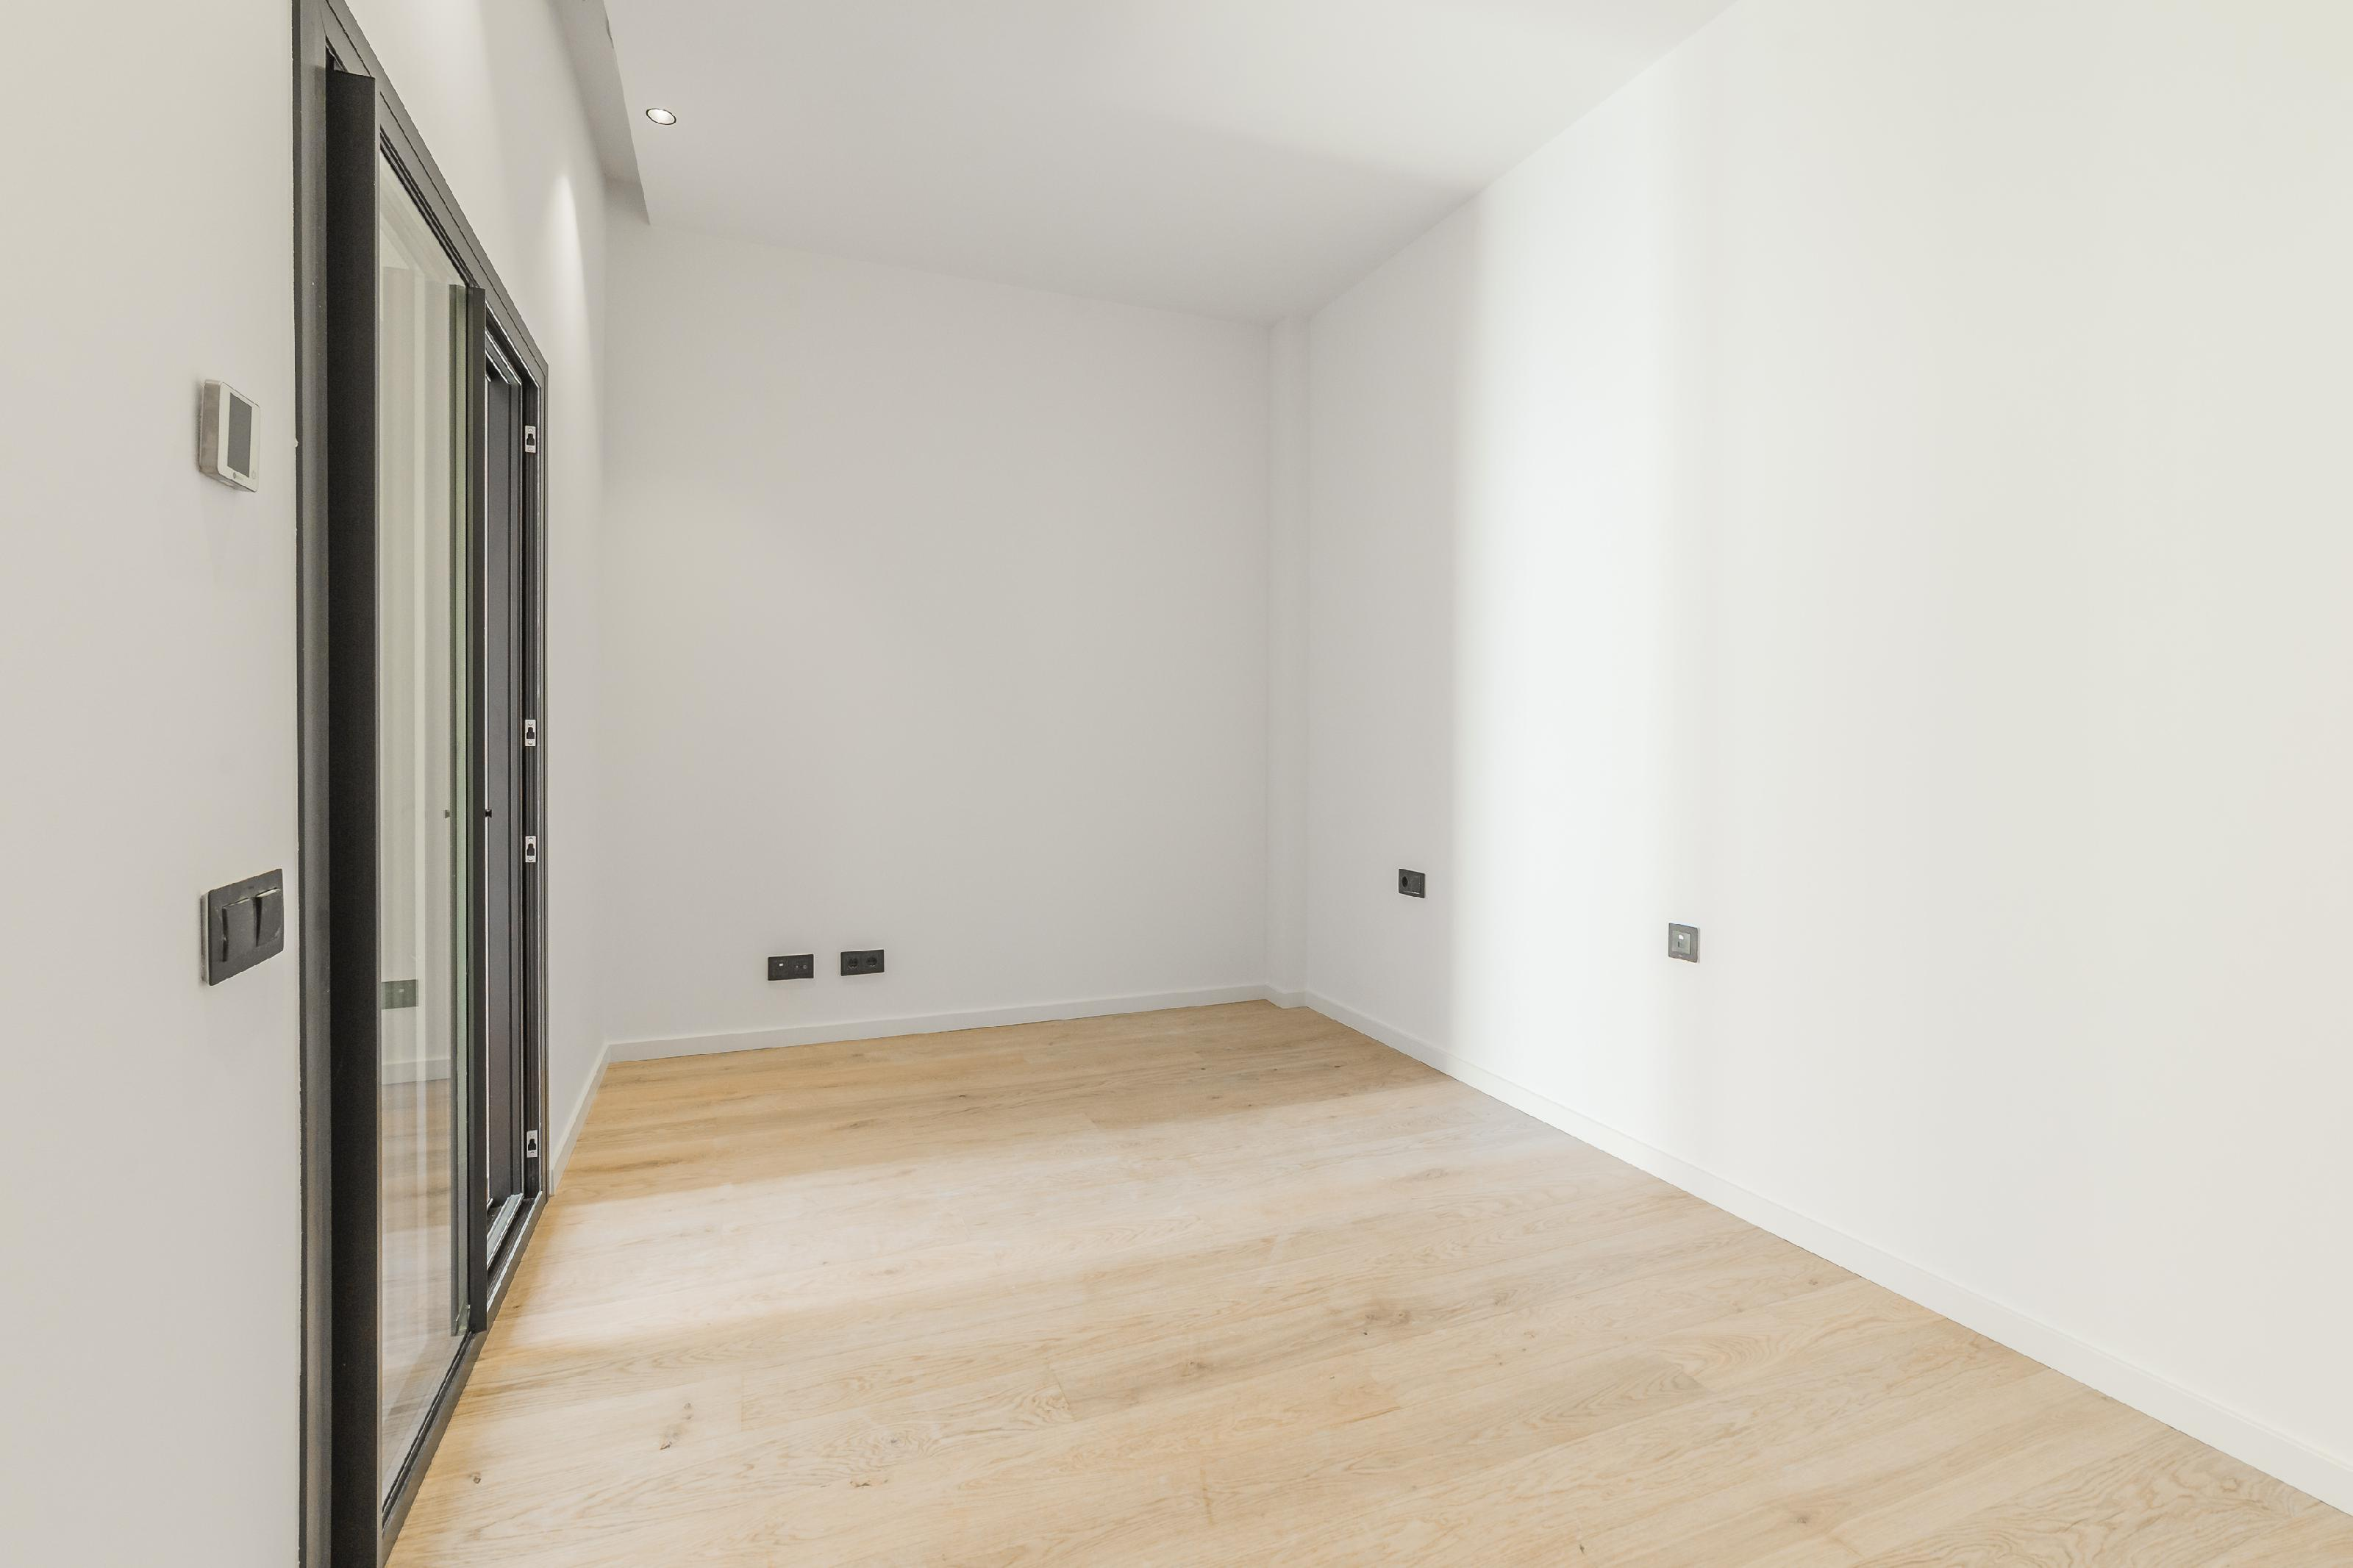 182474 Apartment for sale in Eixample, Old Left Eixample 25